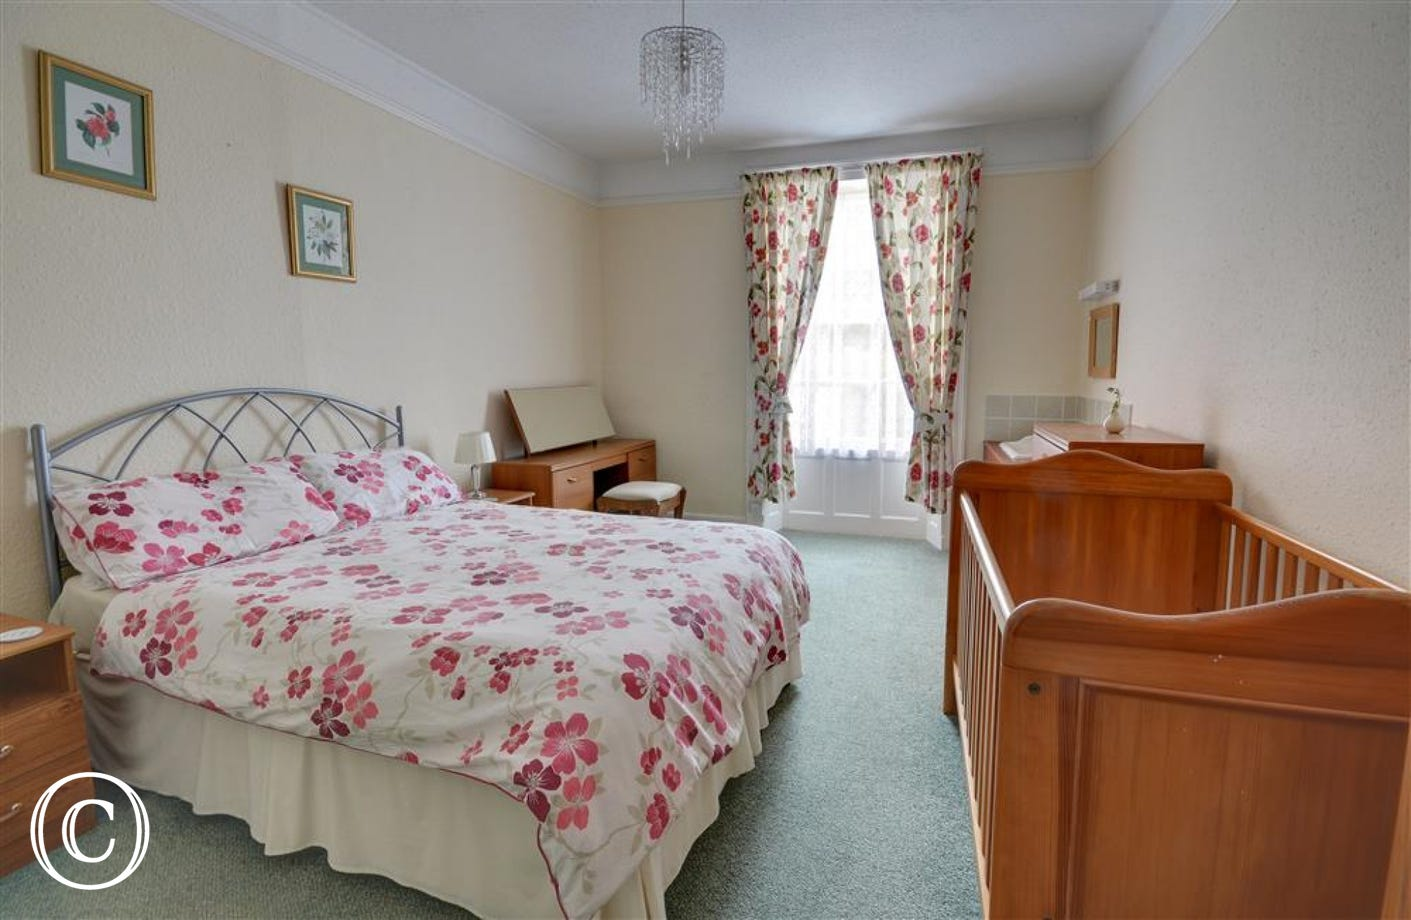 Large double bedroom with plenty of room for a cot